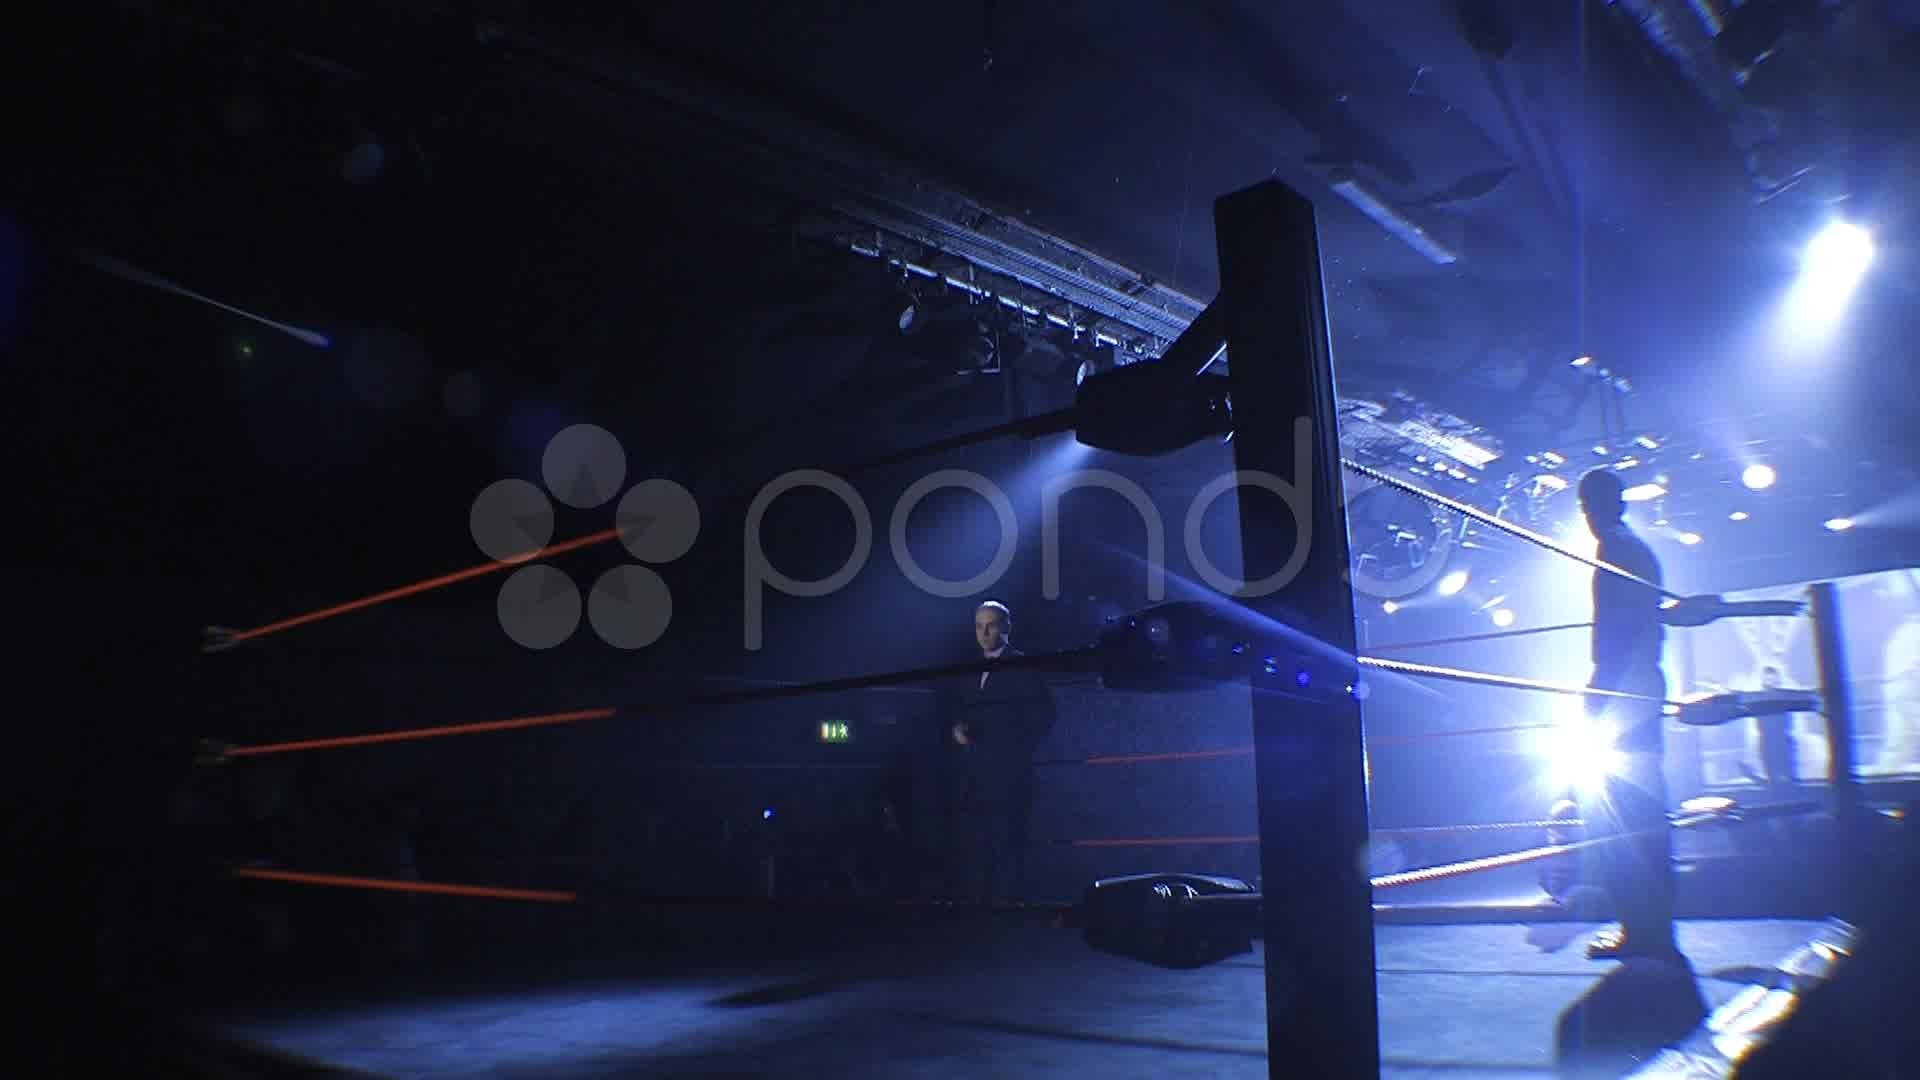 High Quality Image of Wrestling Ring › px